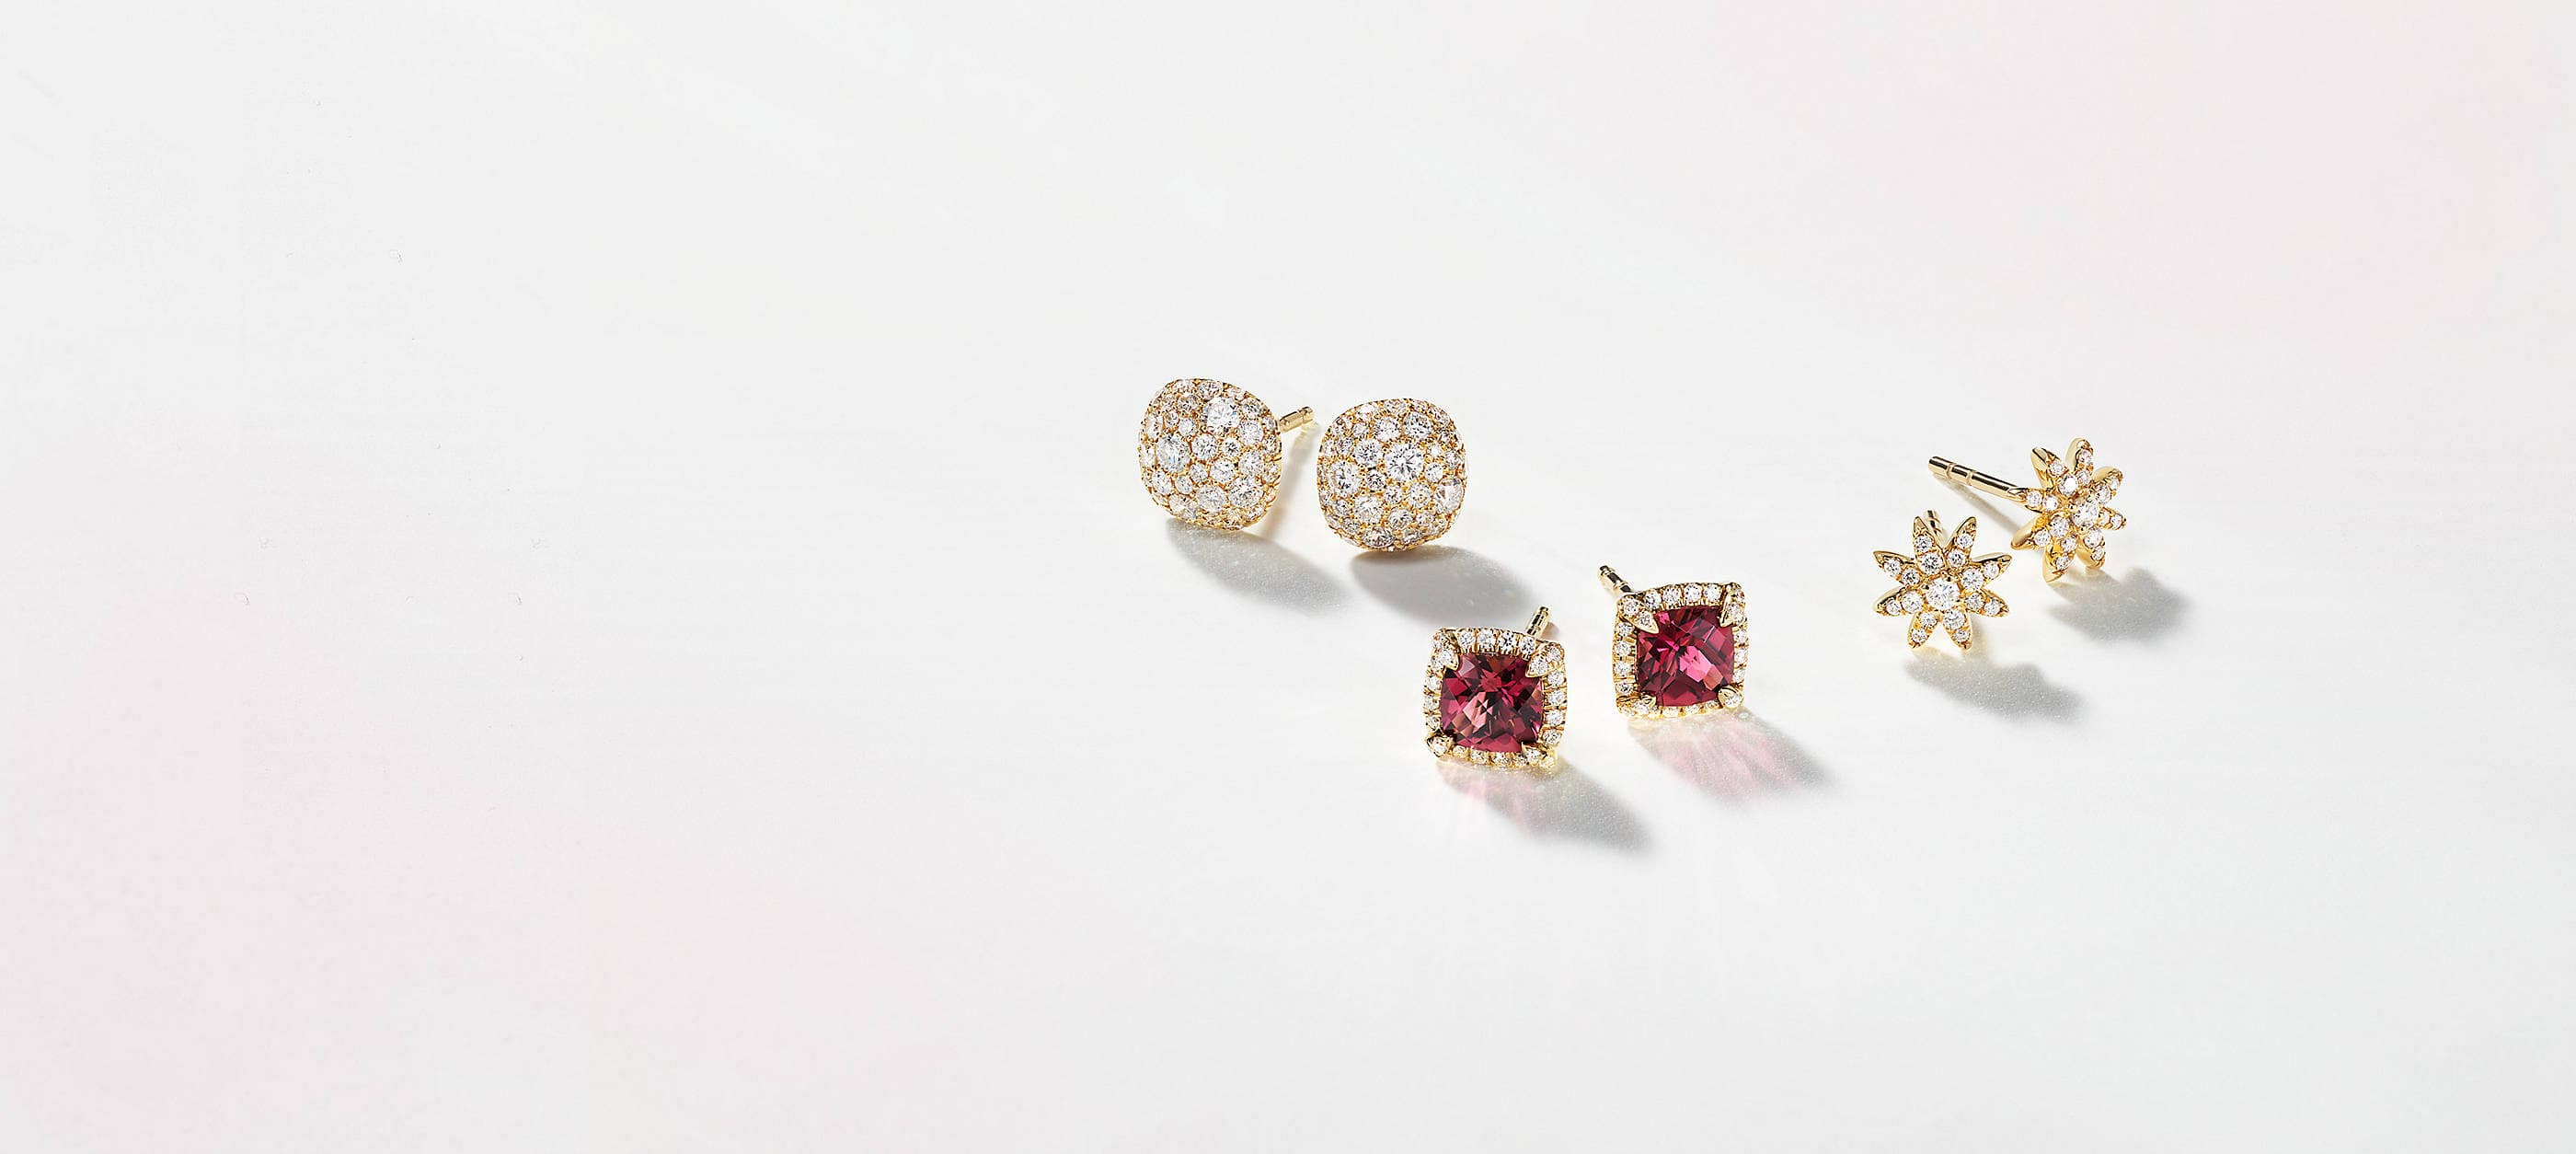 Three pairs of David Yurman stud earrings scattered atop a white background with soft shadows. The women's jewelry is crafted from 18K yellow gold with pavé diamonds in the shape of circles, cushions or stars. The center pair features cushion-cut pink tourmaline center stones.